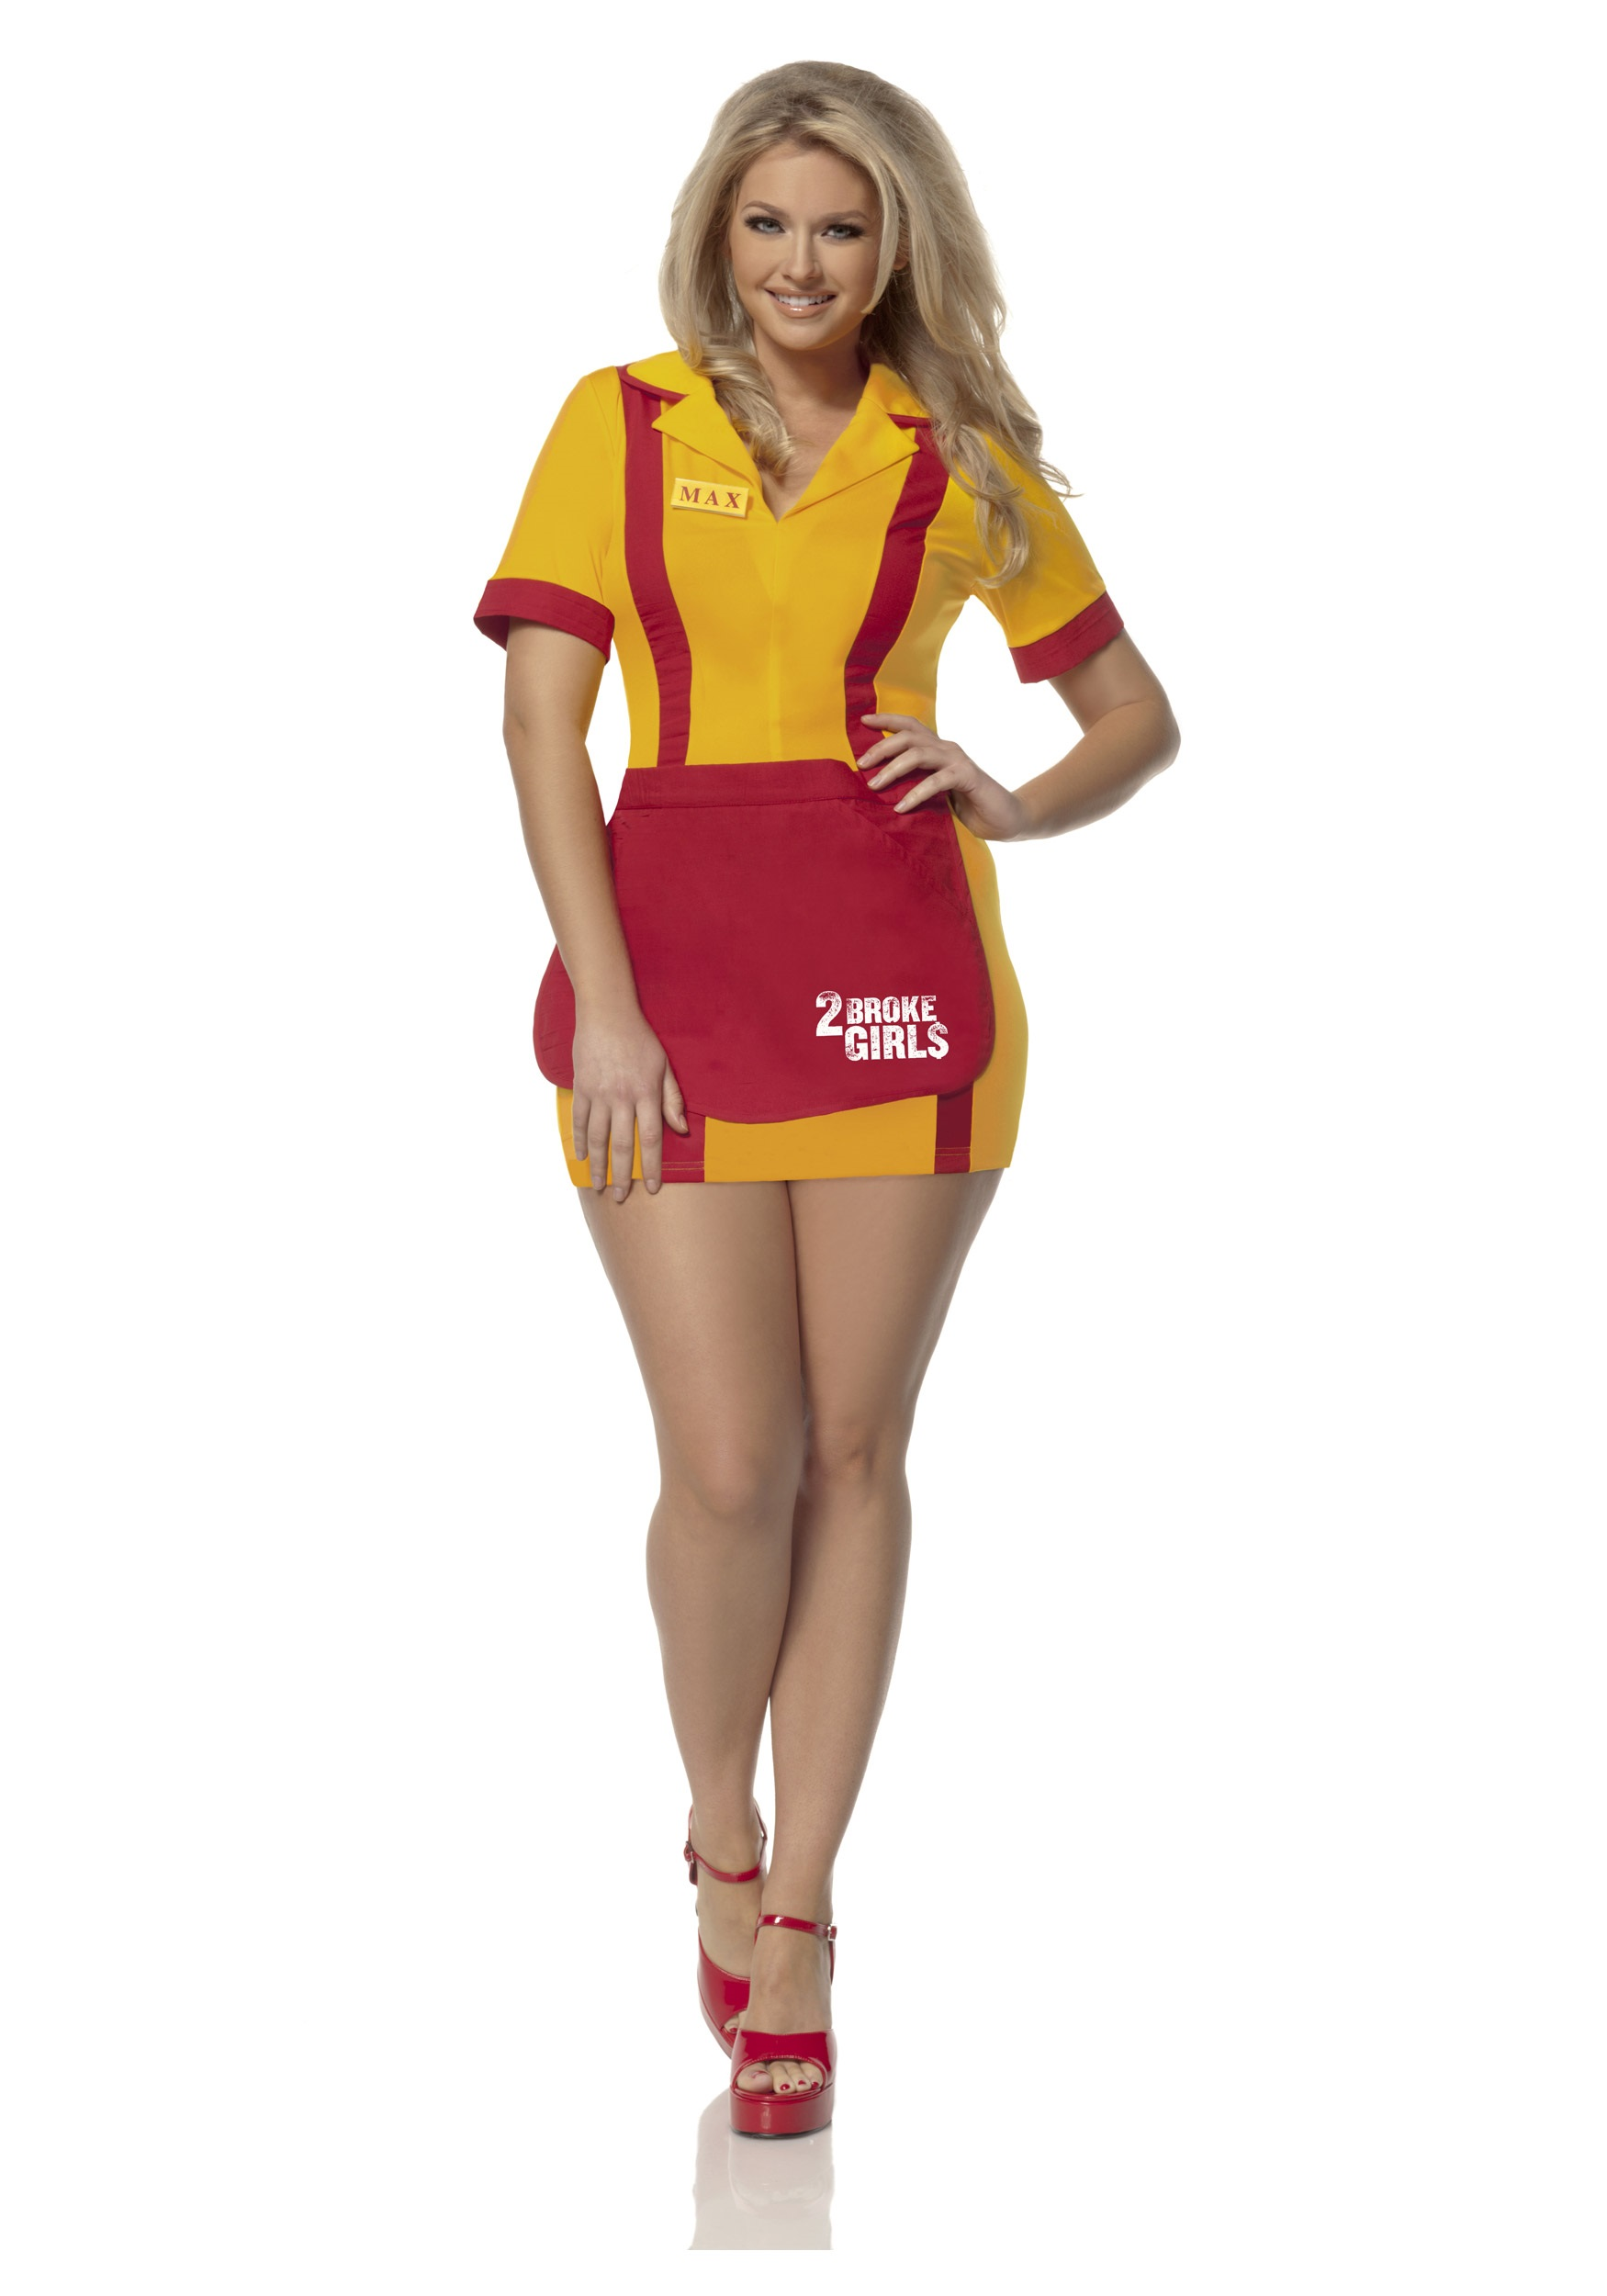 brooke girls Han lee is a main character on 2 broke girls he owns the diner in which caroline and max work in he has brown coloured eyes, and black hair and is very short, and .